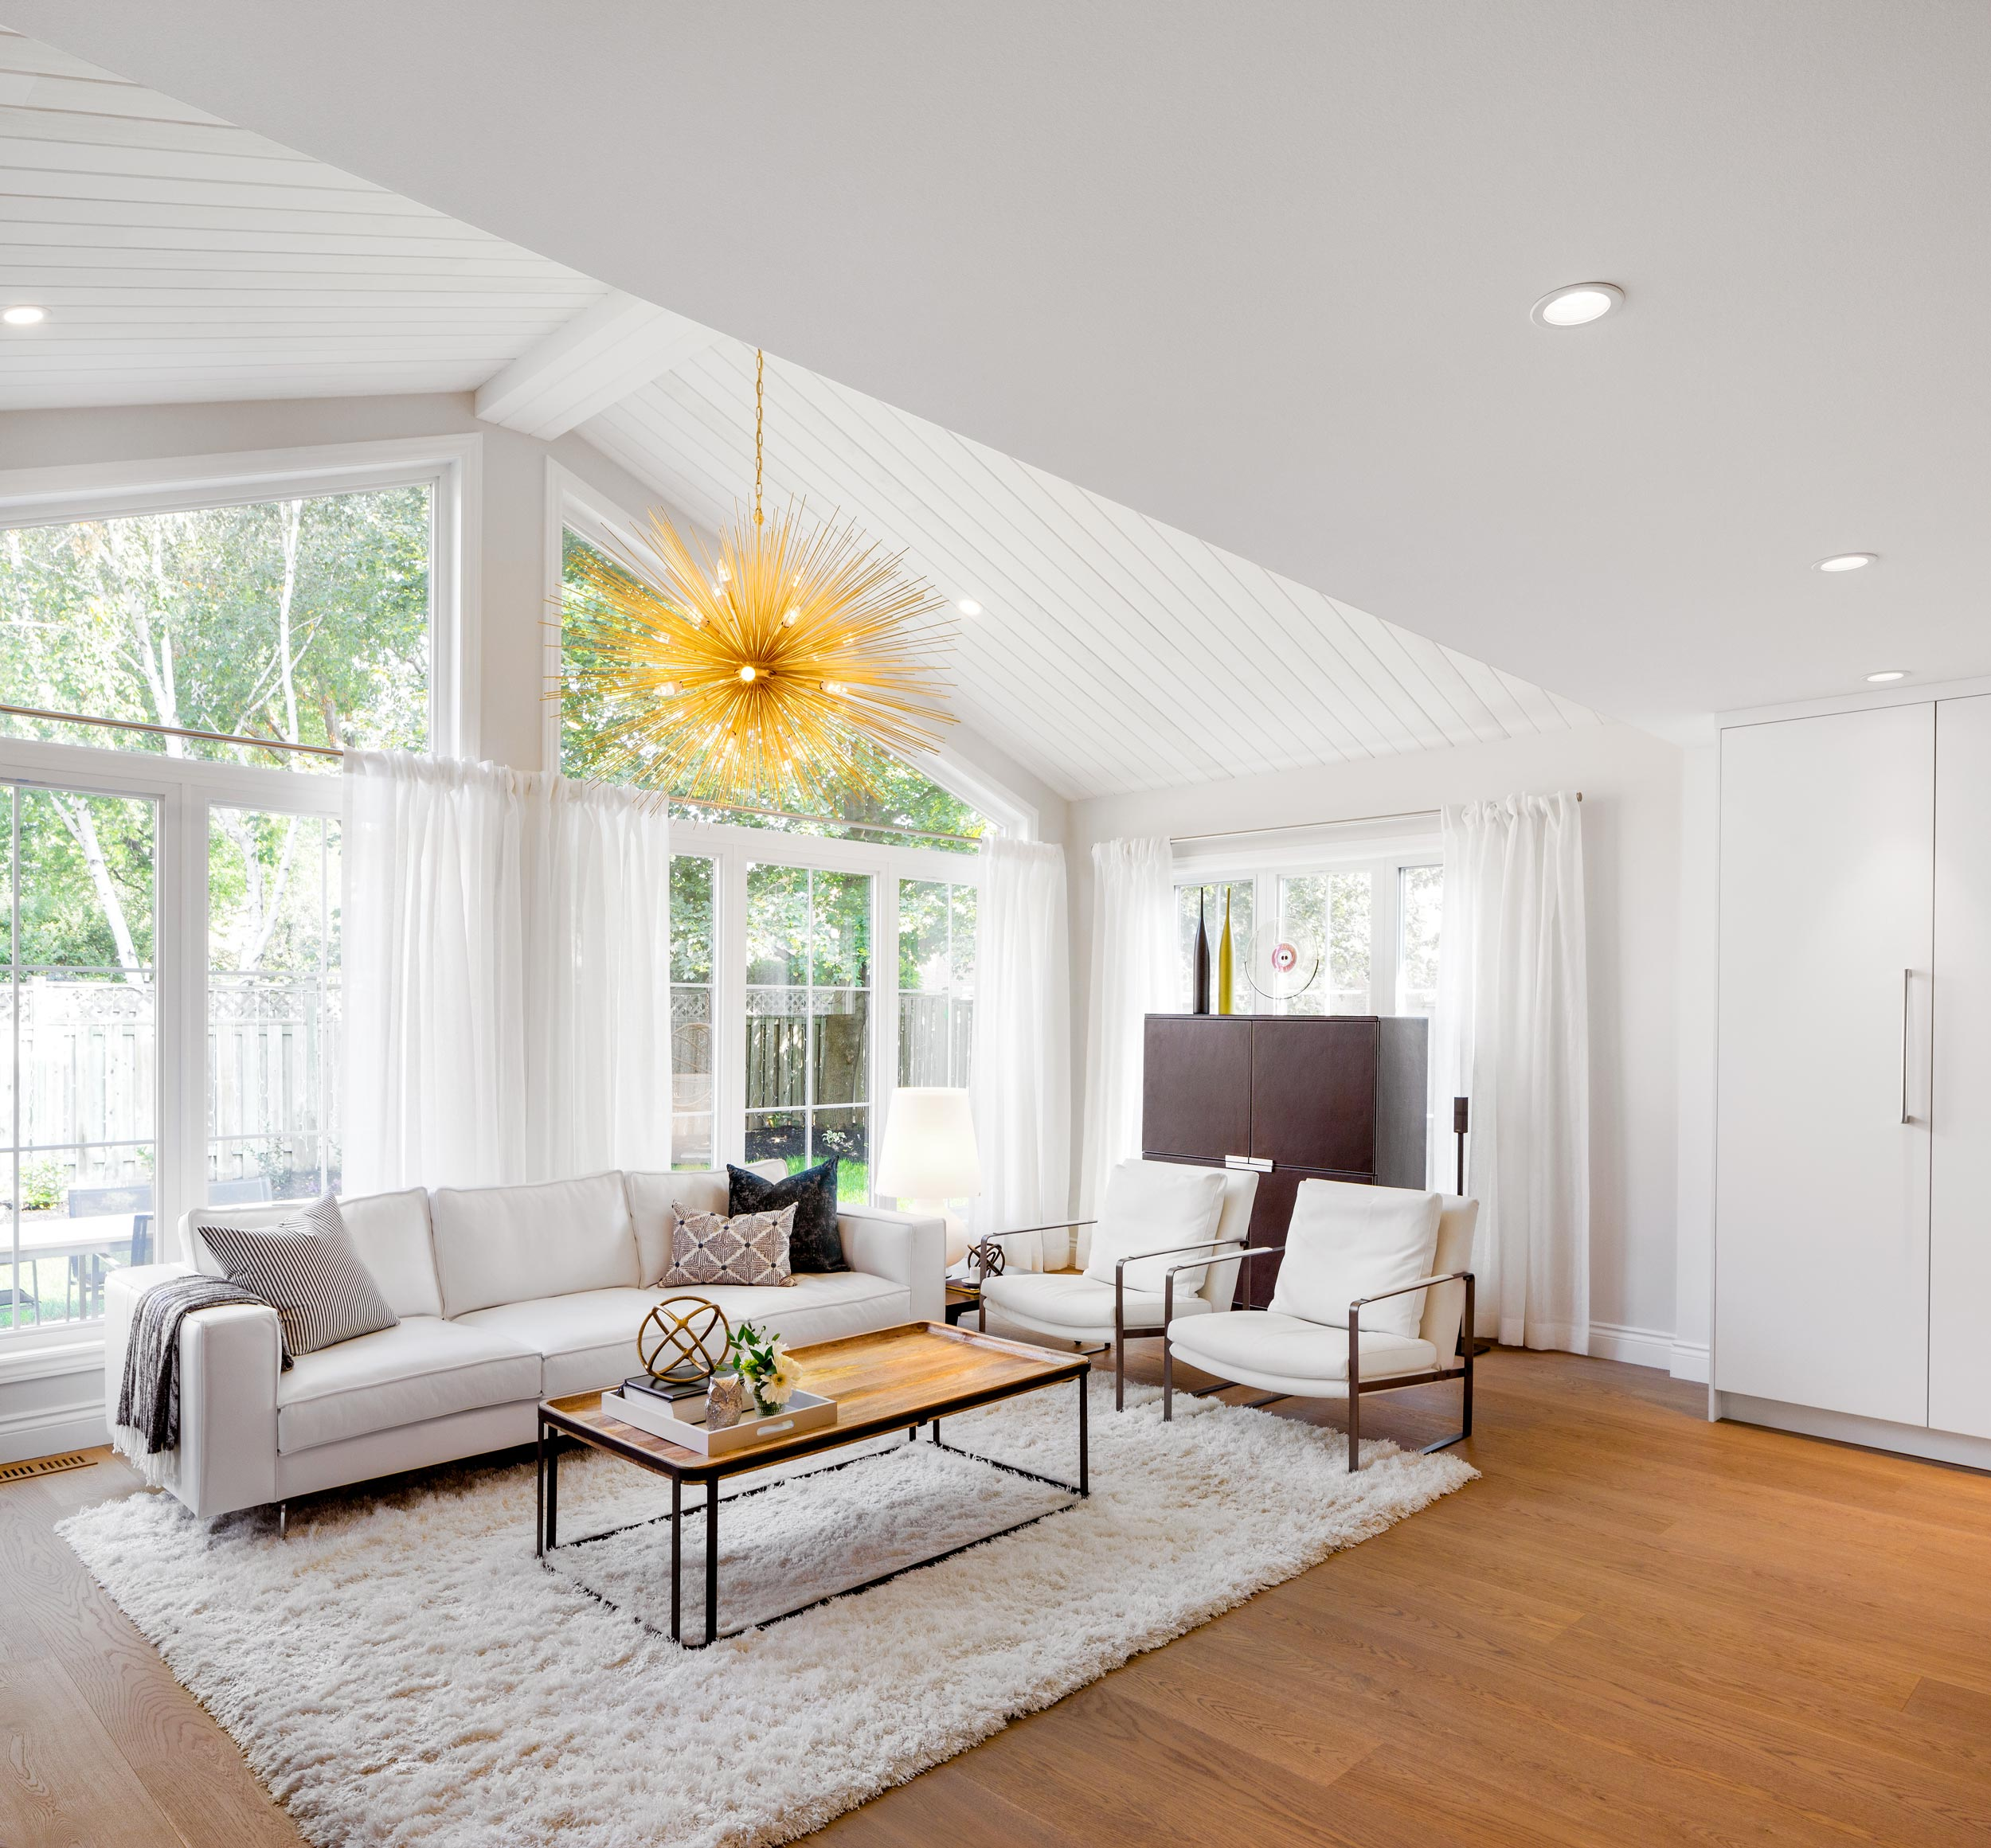 Markham Home Interior Photography by Worker Bee Supply